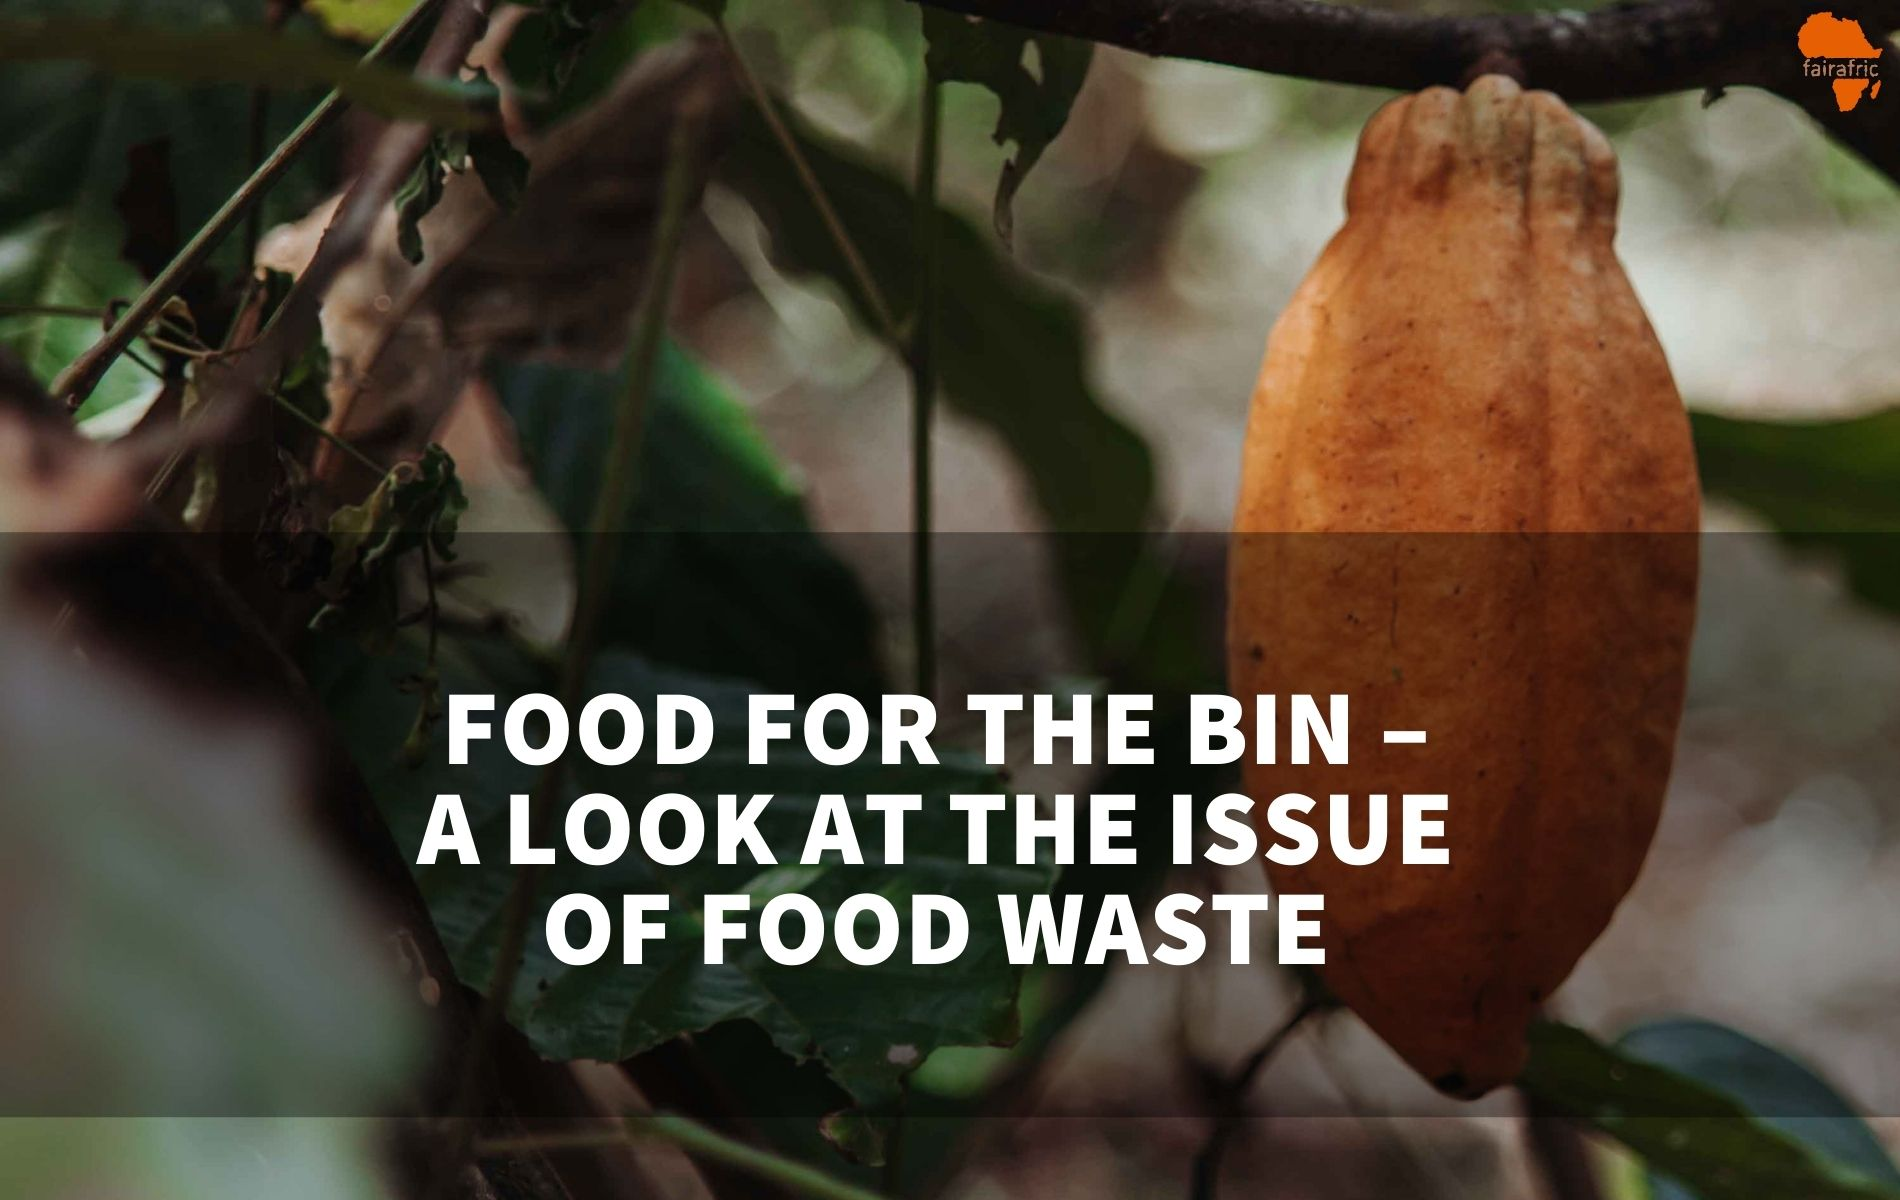 Food for the bin – A look at the issue of food waste